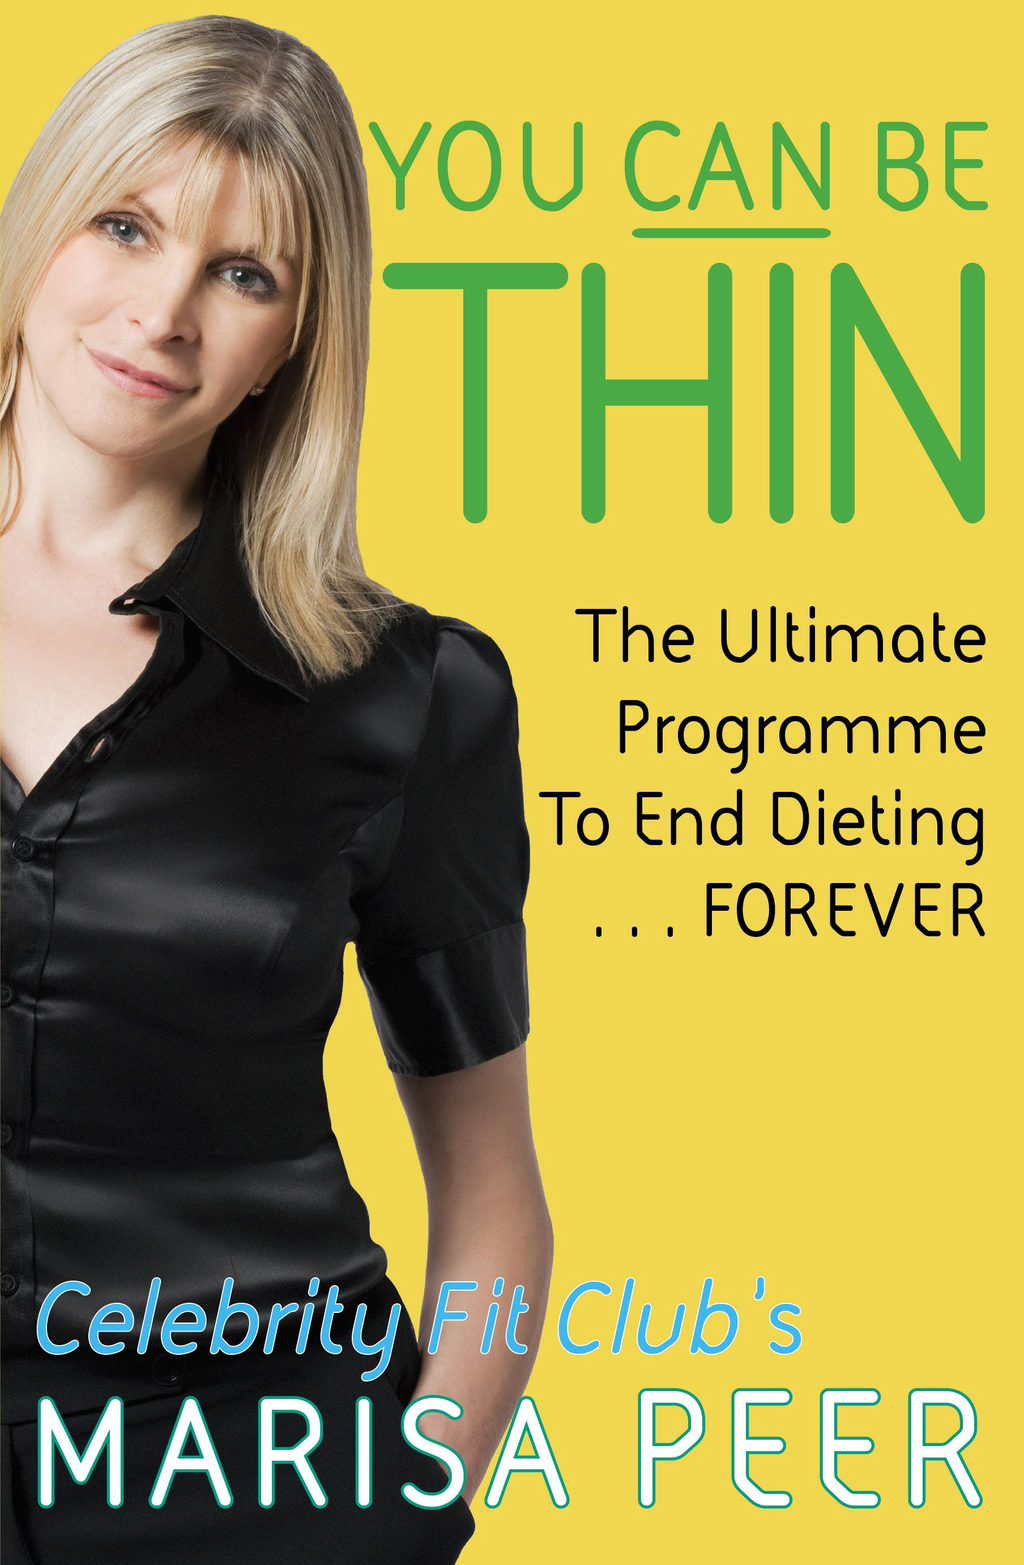 You Can Be Thin The Ultimate Programme to End Dieting...Forever